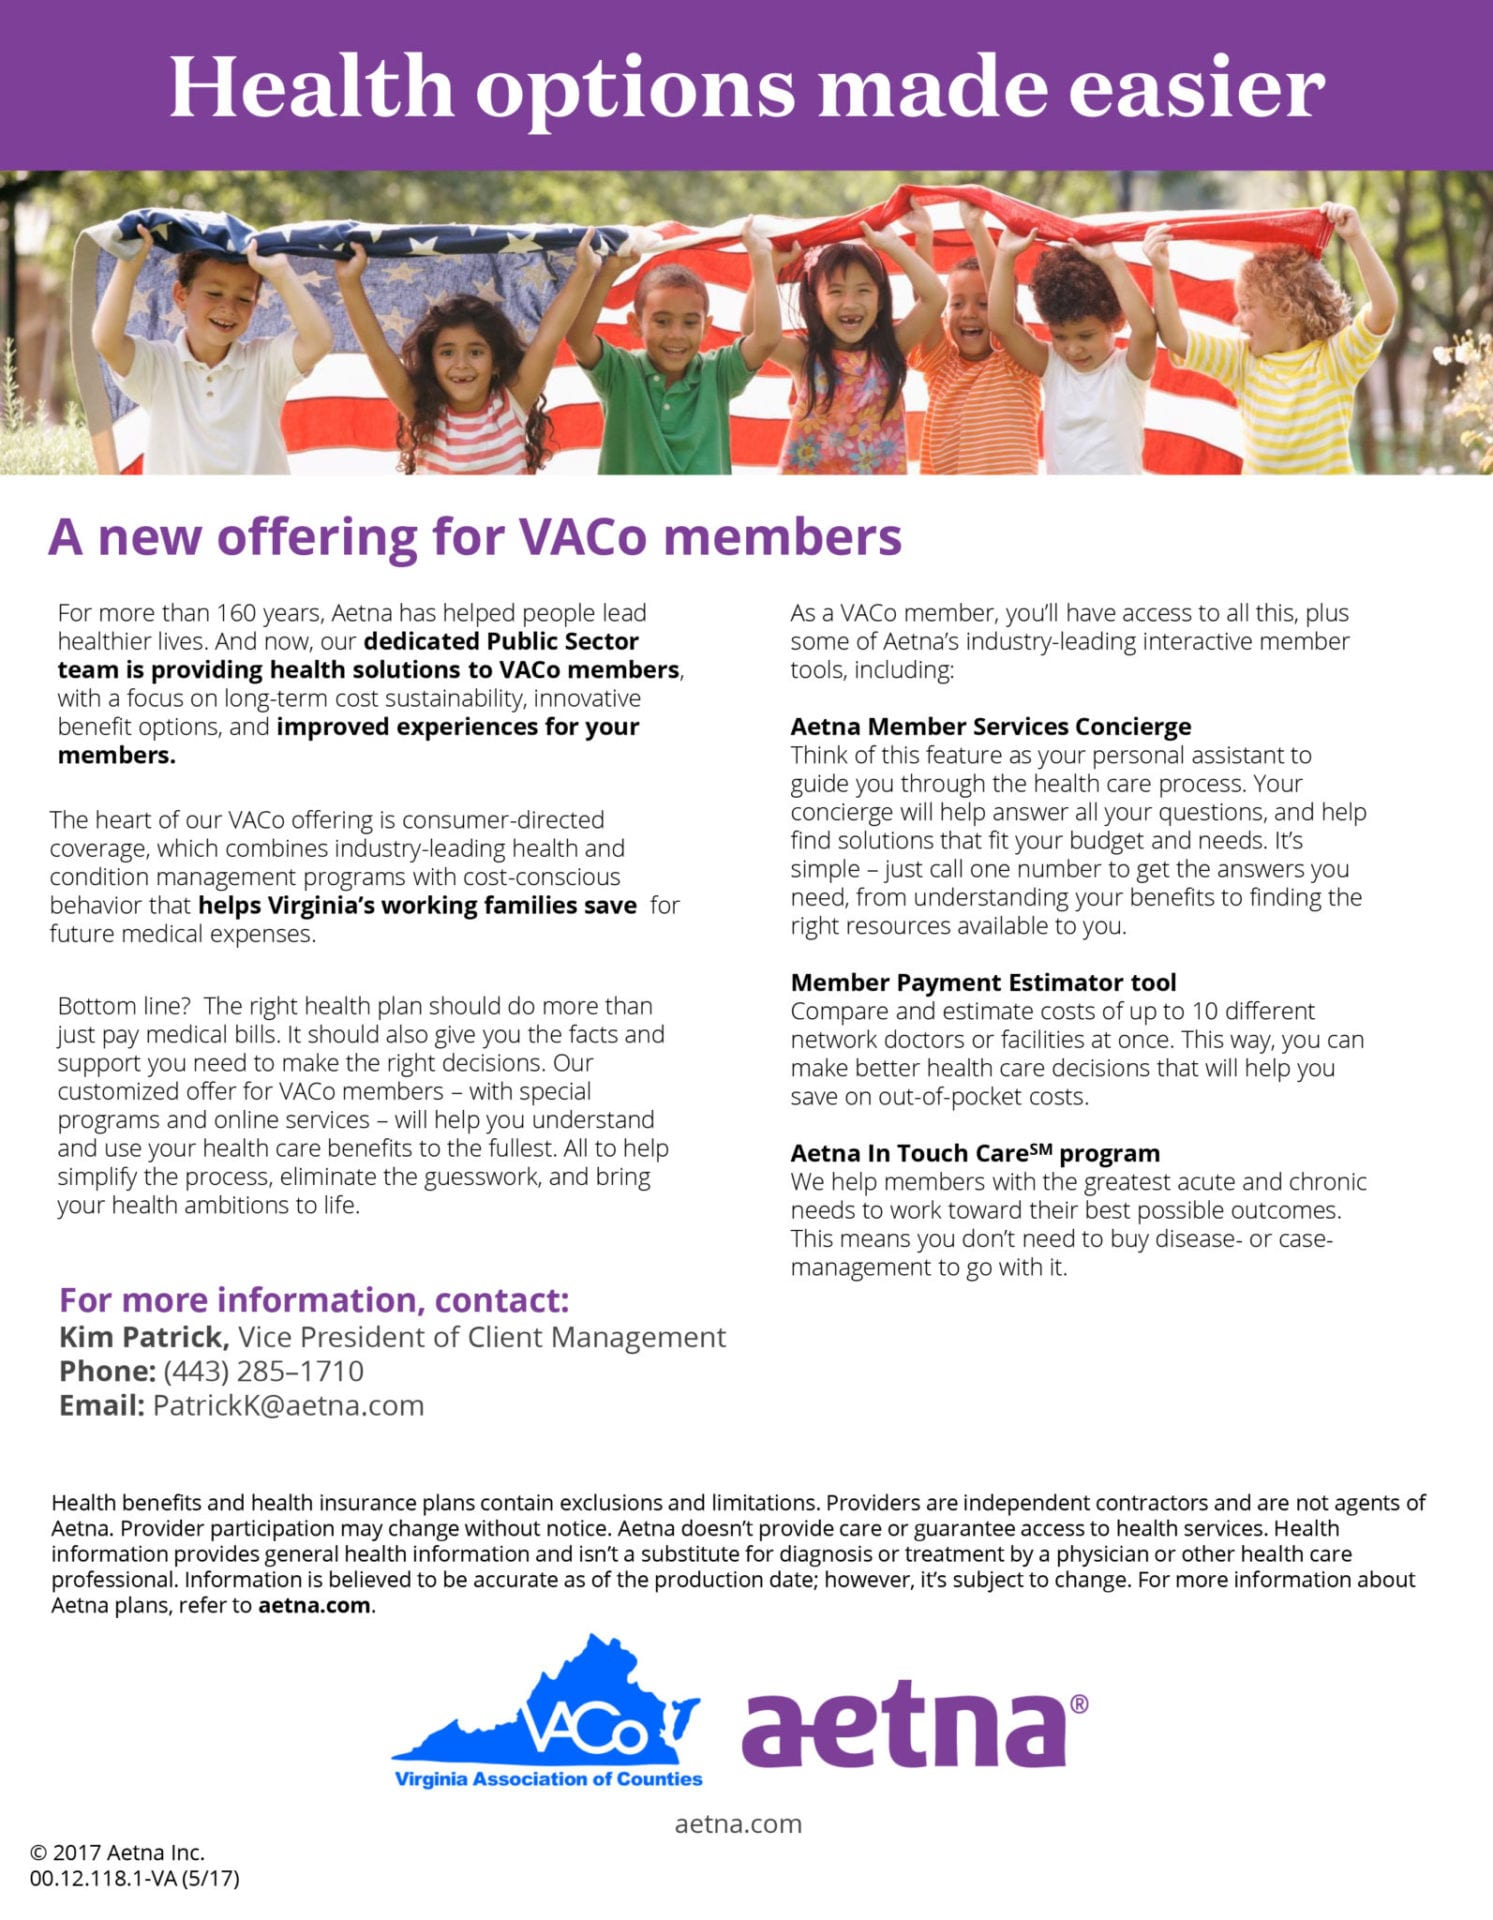 A new offering for VACo Members from Aetna - Virginia